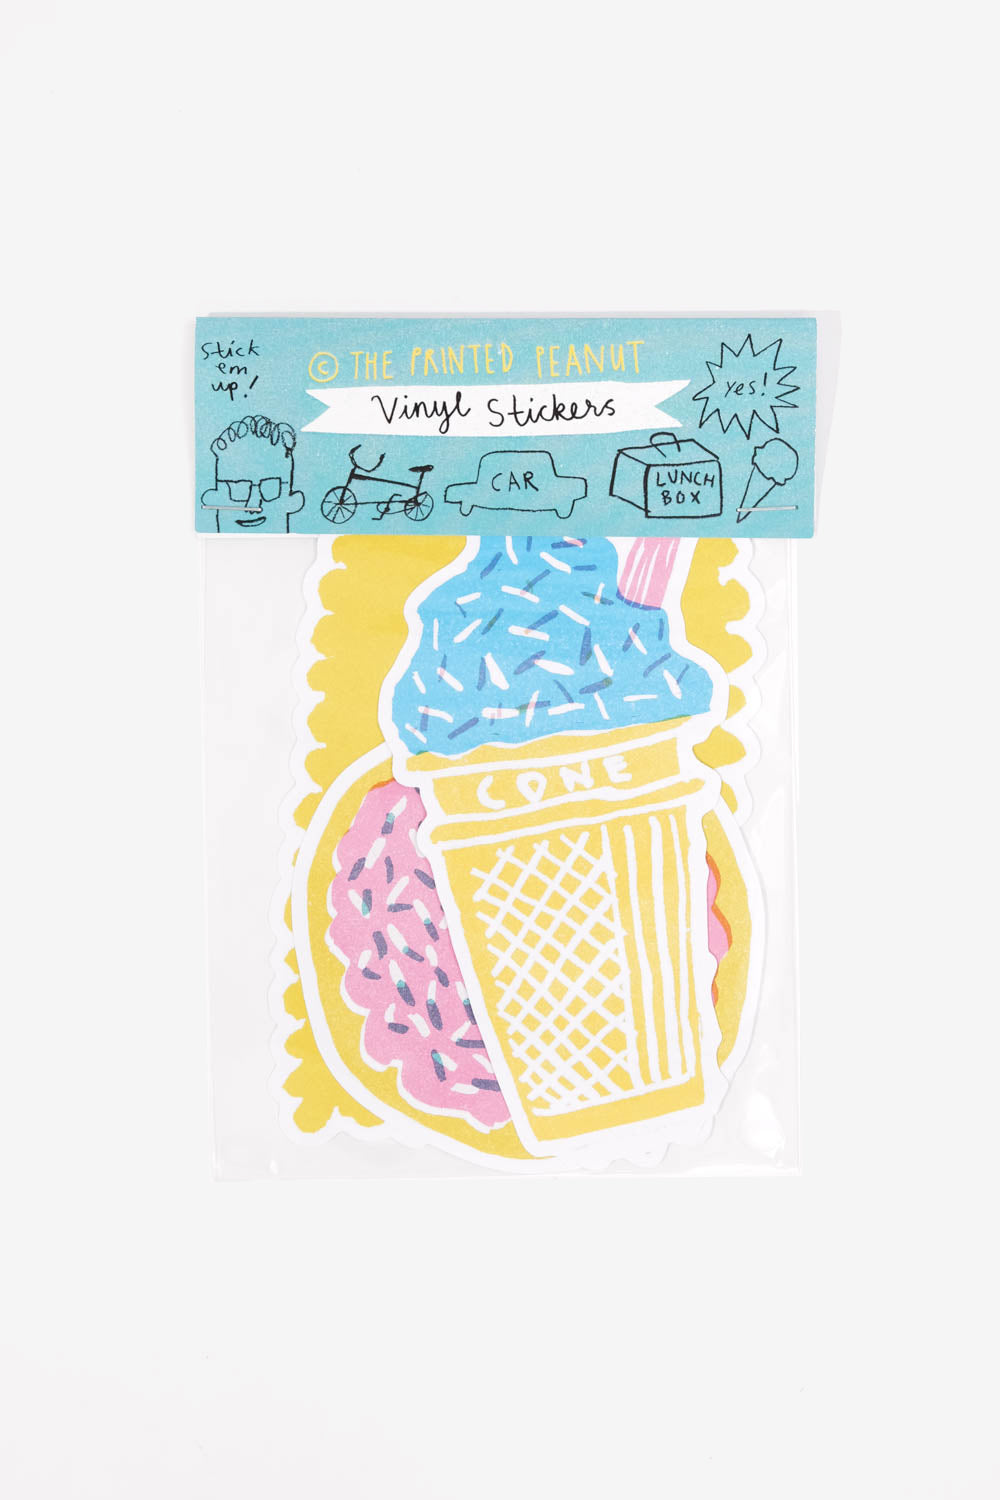 Sweet Treats Vinyl Sticker Pack, Gifts, The Printed Peanut LTD - Six and Sons